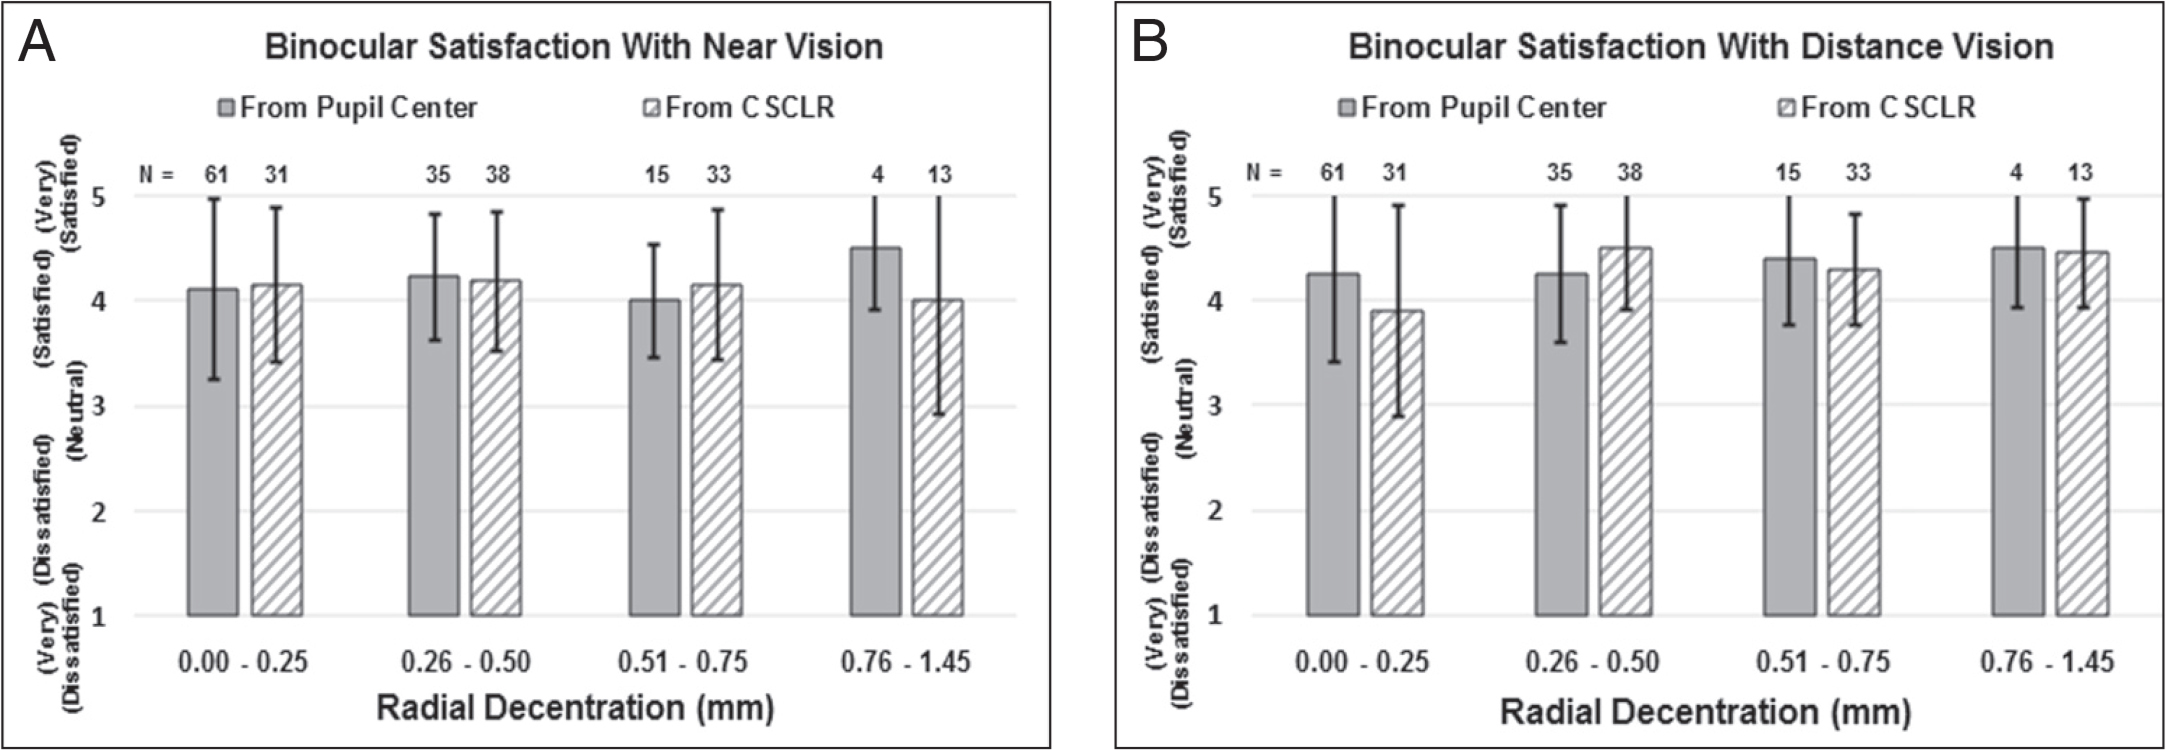 At the 3-month visit, binocular satisfaction with (A) near and (B) distance vision as a function of inlay decentration with respect to the pupil center and coaxially sighted corneal light reflex (CSCLR). Error bars represent one standard deviation.